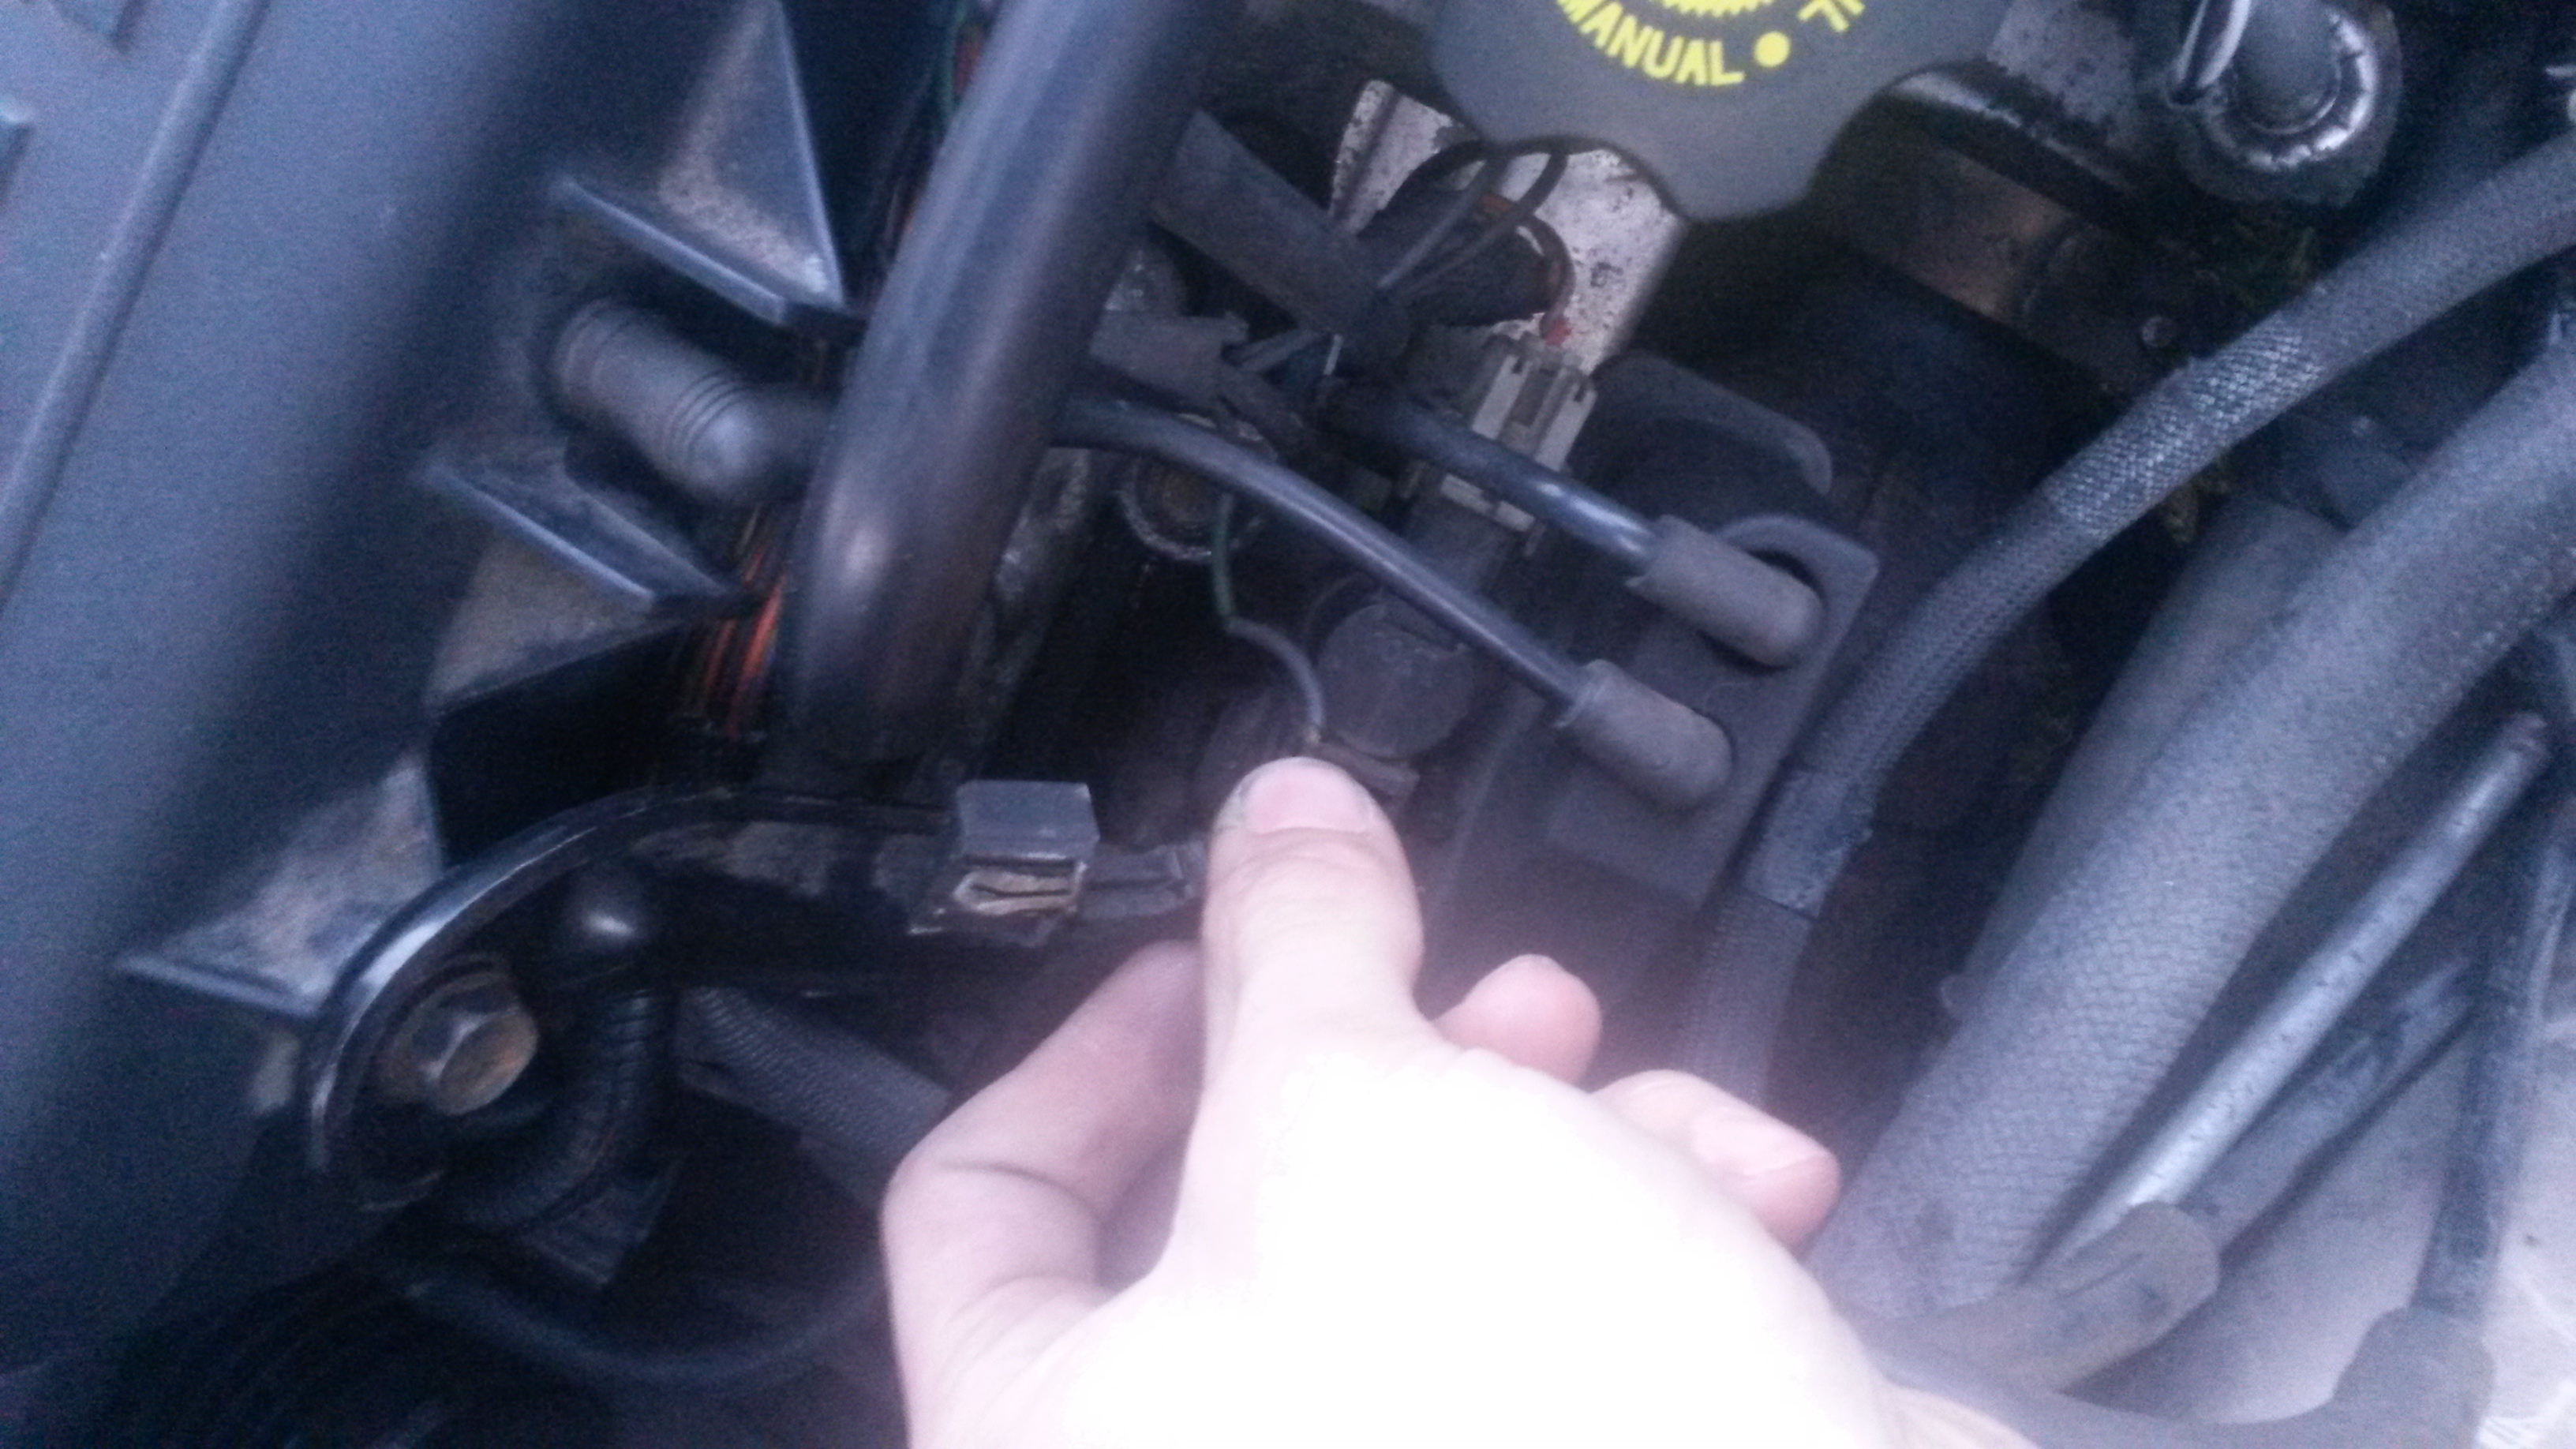 Chrysler 300m Stalling When Warm I Have Tried Everything 2000 Timing Belt Whaaaa